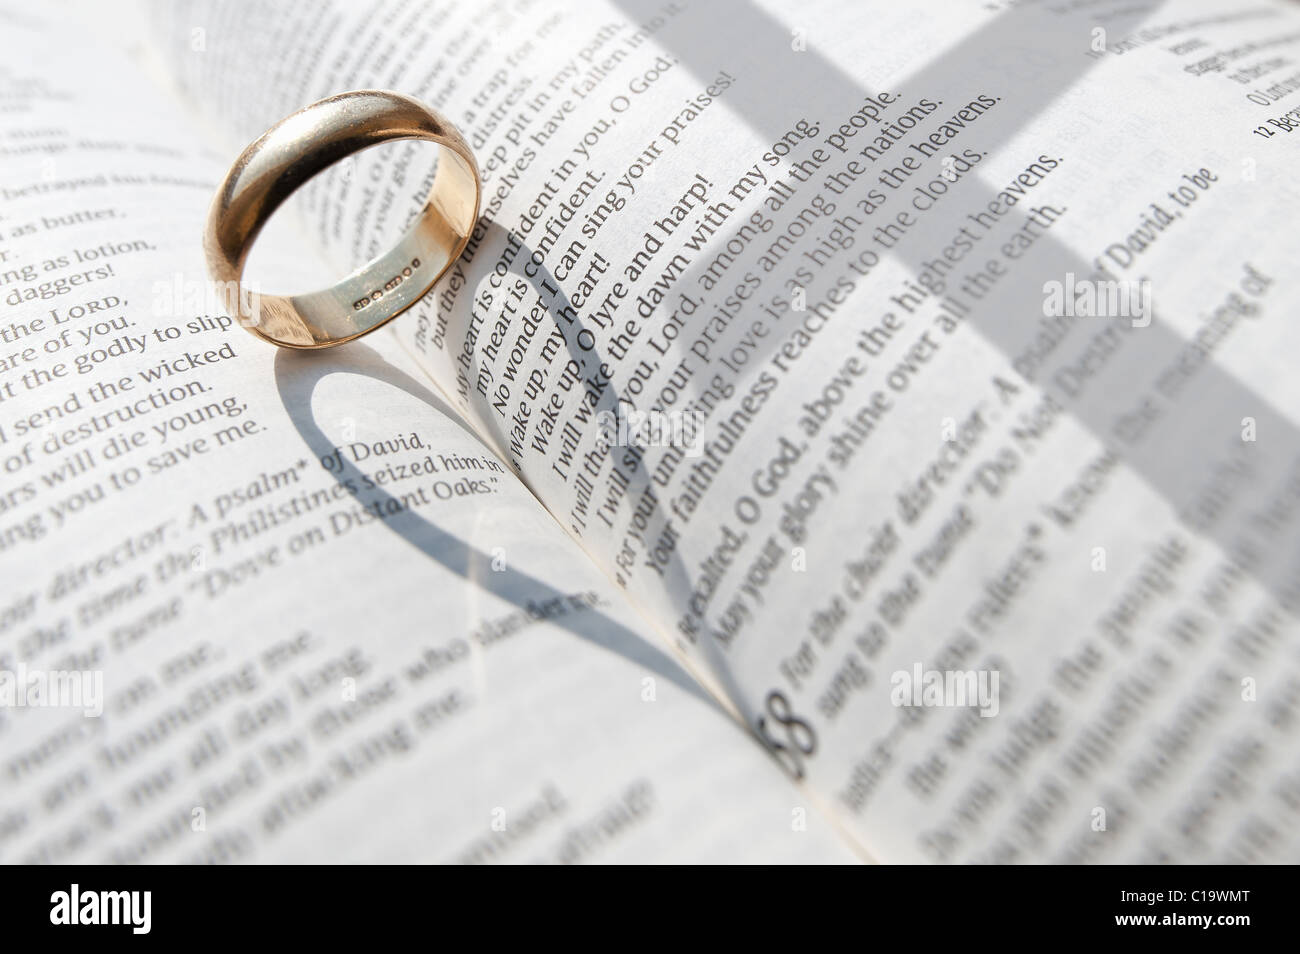 A wedding ring casting a shadow on the open pages of an open Stock